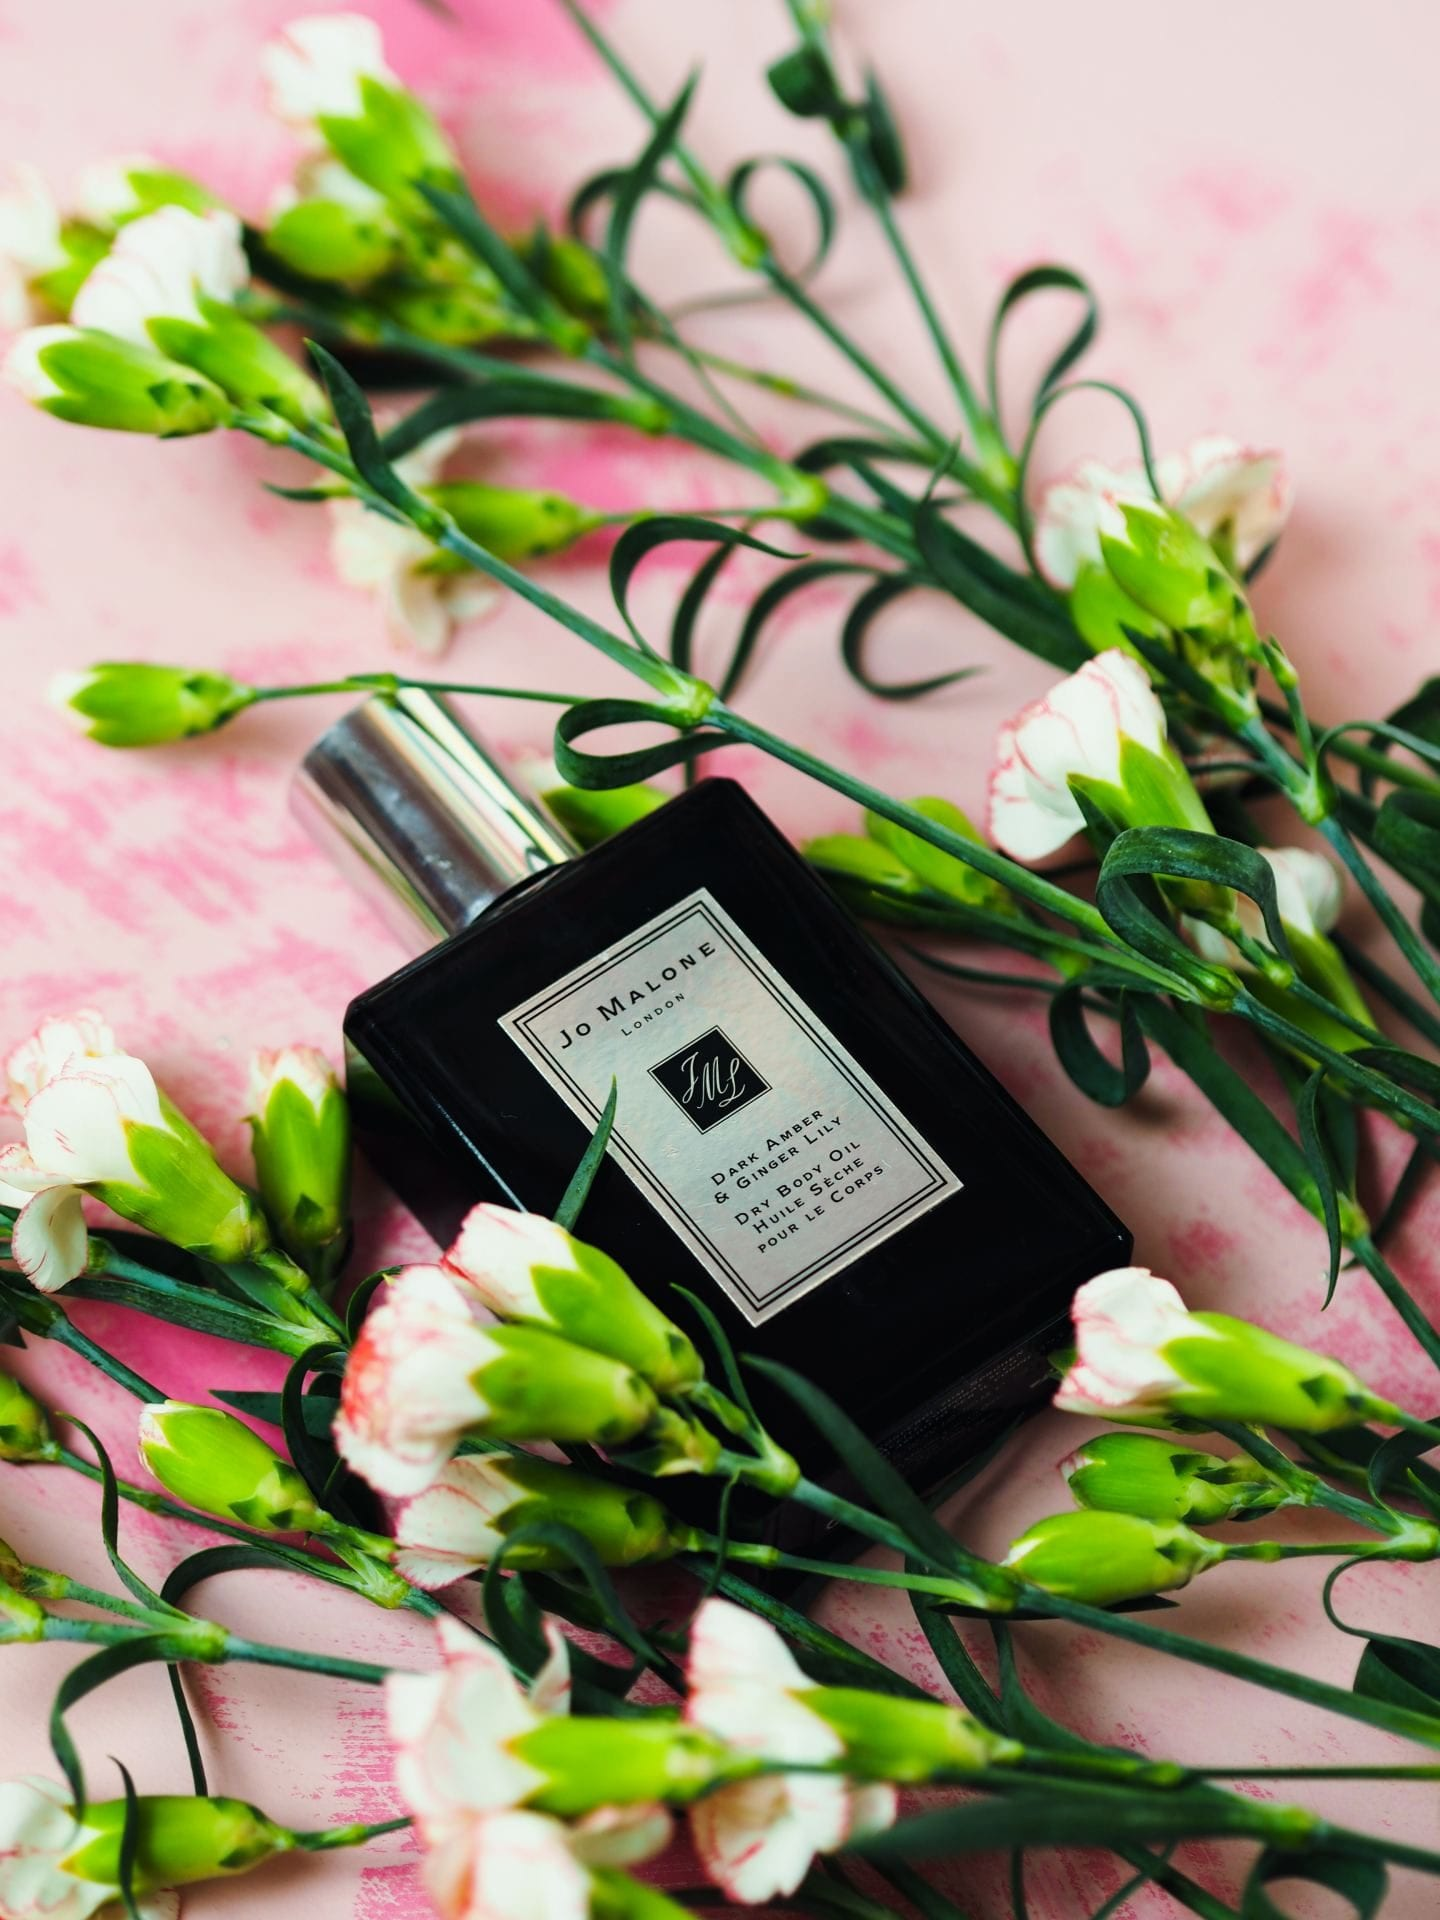 Jo Malone London Dry Body Oil